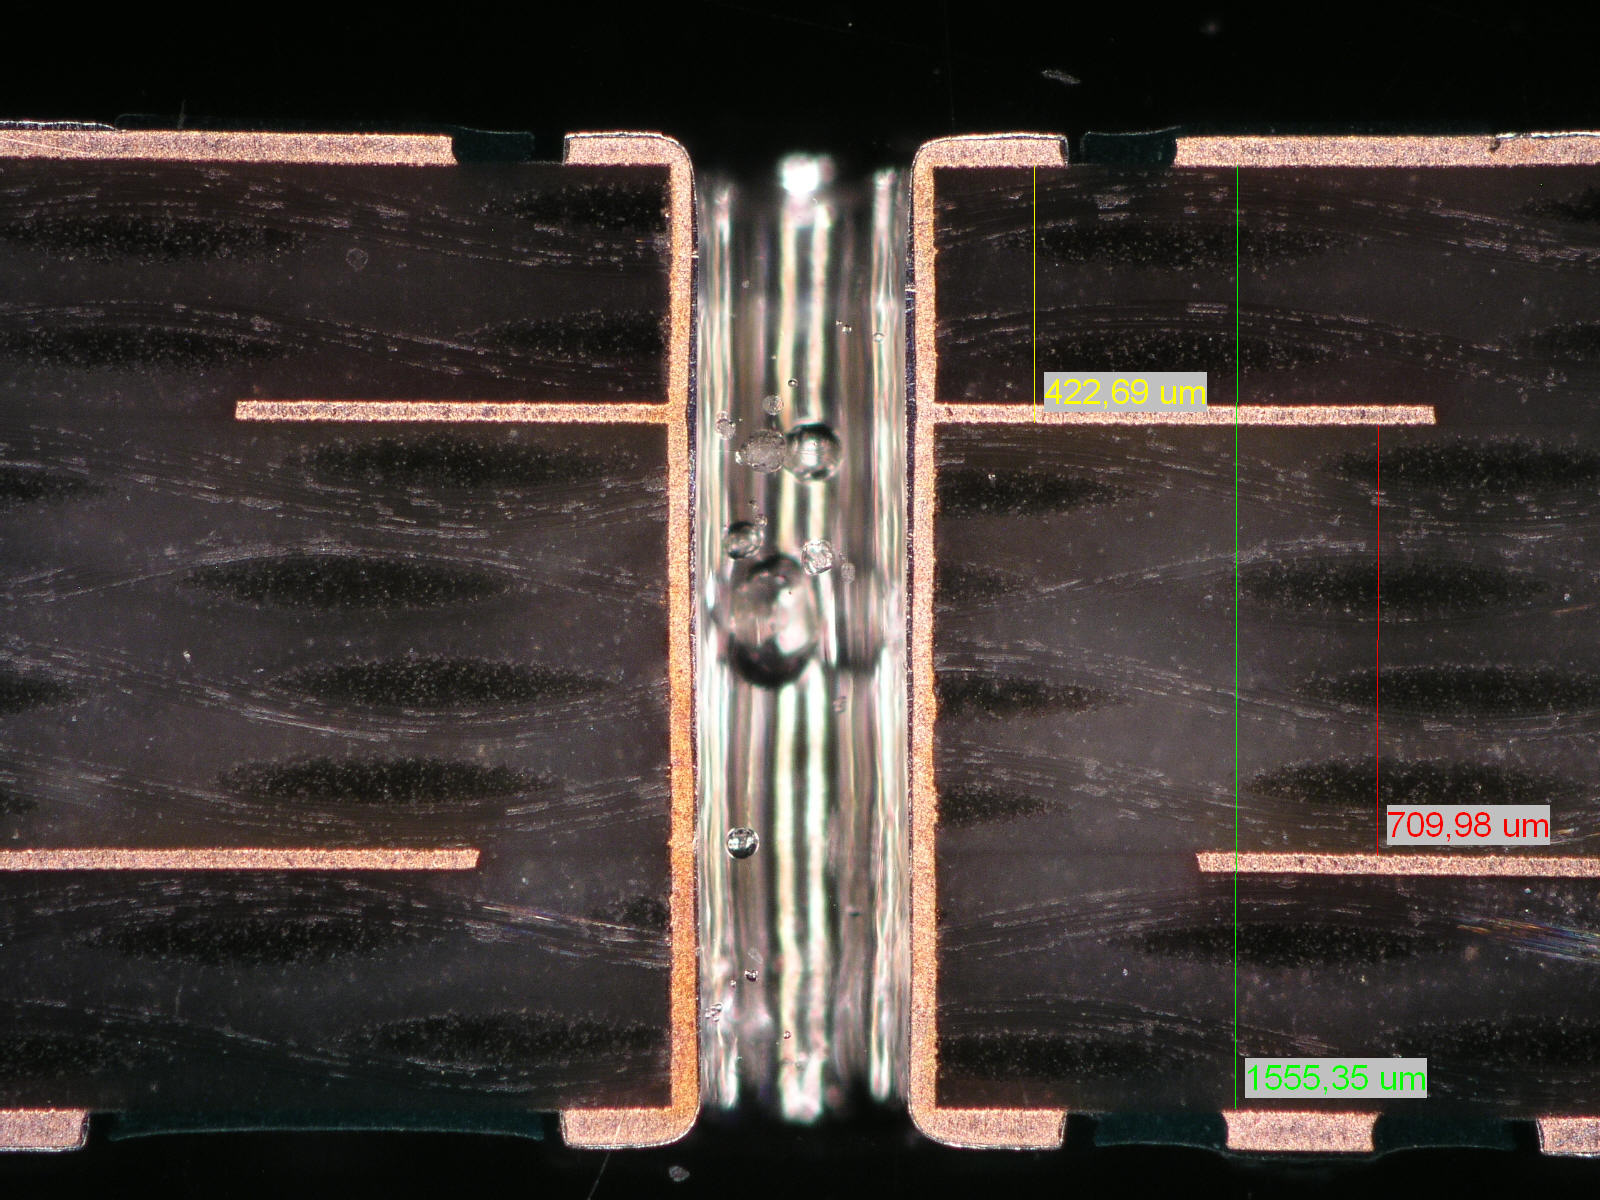 How Do We Assure The Quality Of Your Pcb Part 3 Eurocircuits Circuit Board Inspection Inspect Registration Inner Copper Lands To Holes Next Picture Shows Same As Last One But When Measure